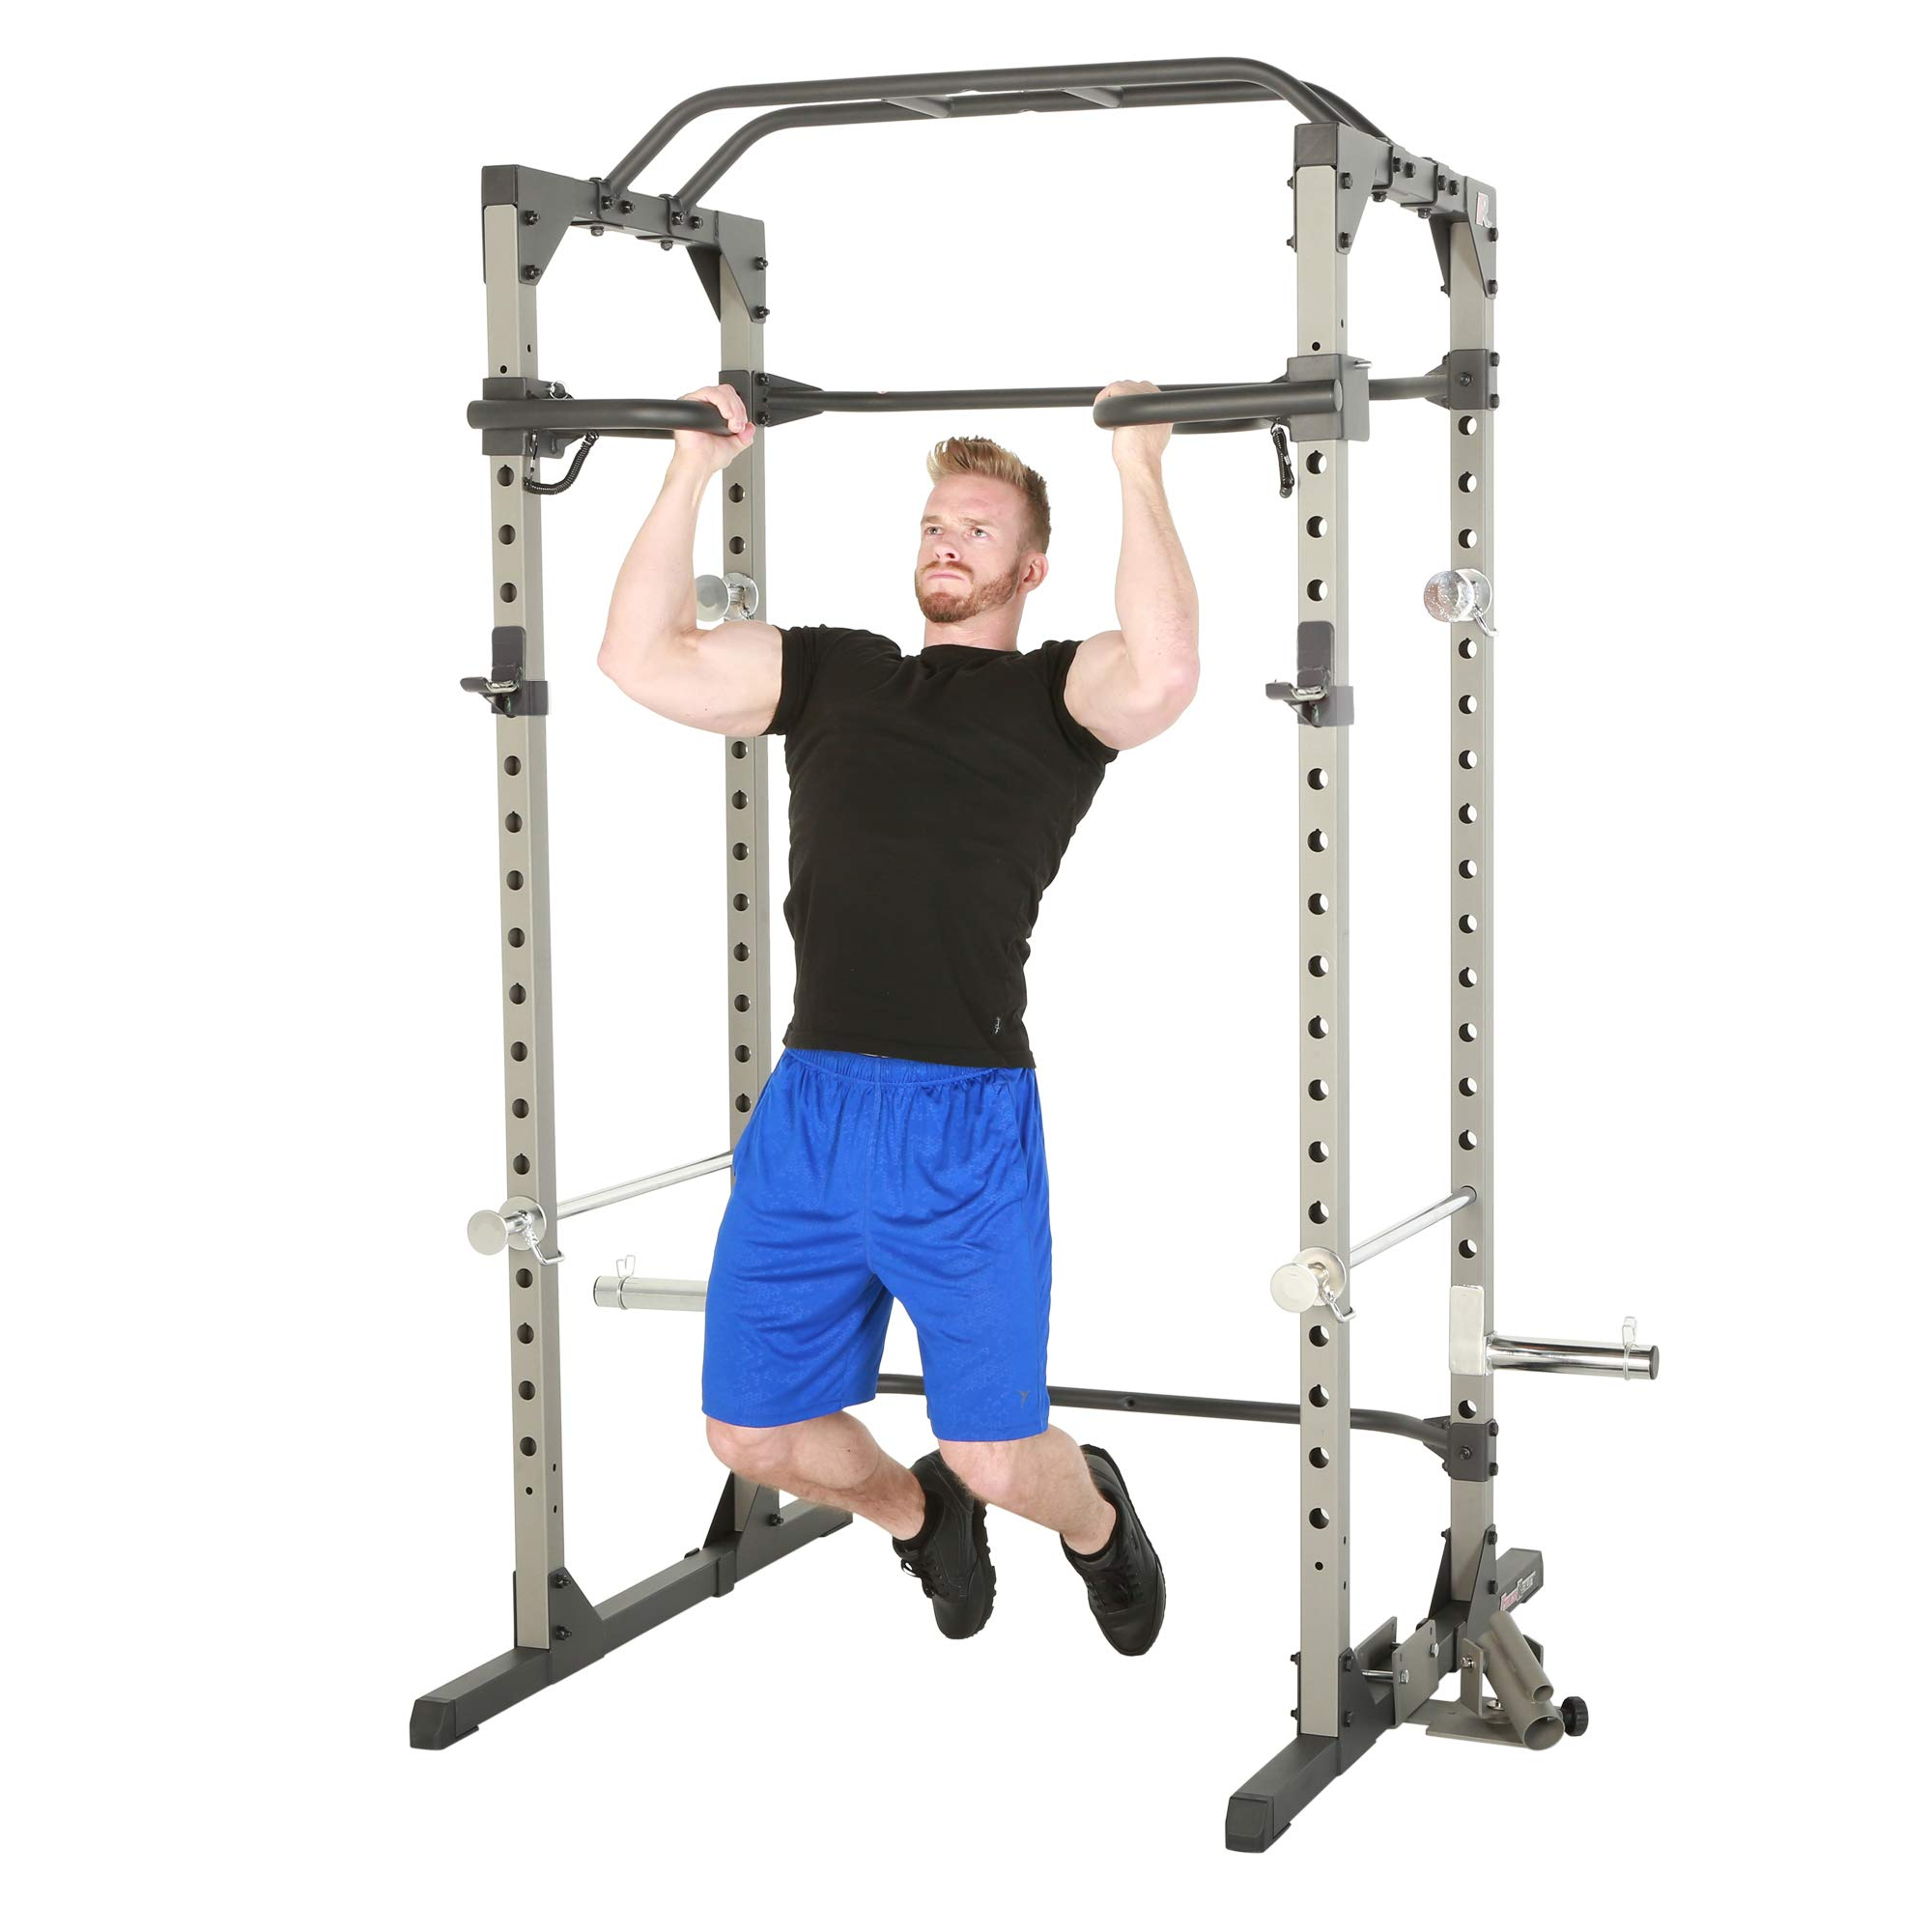 Fitness Reality 2819 Attachment Set for 2''x2'' Steel Tubing Power Cages by Fitness Reality (Image #12)